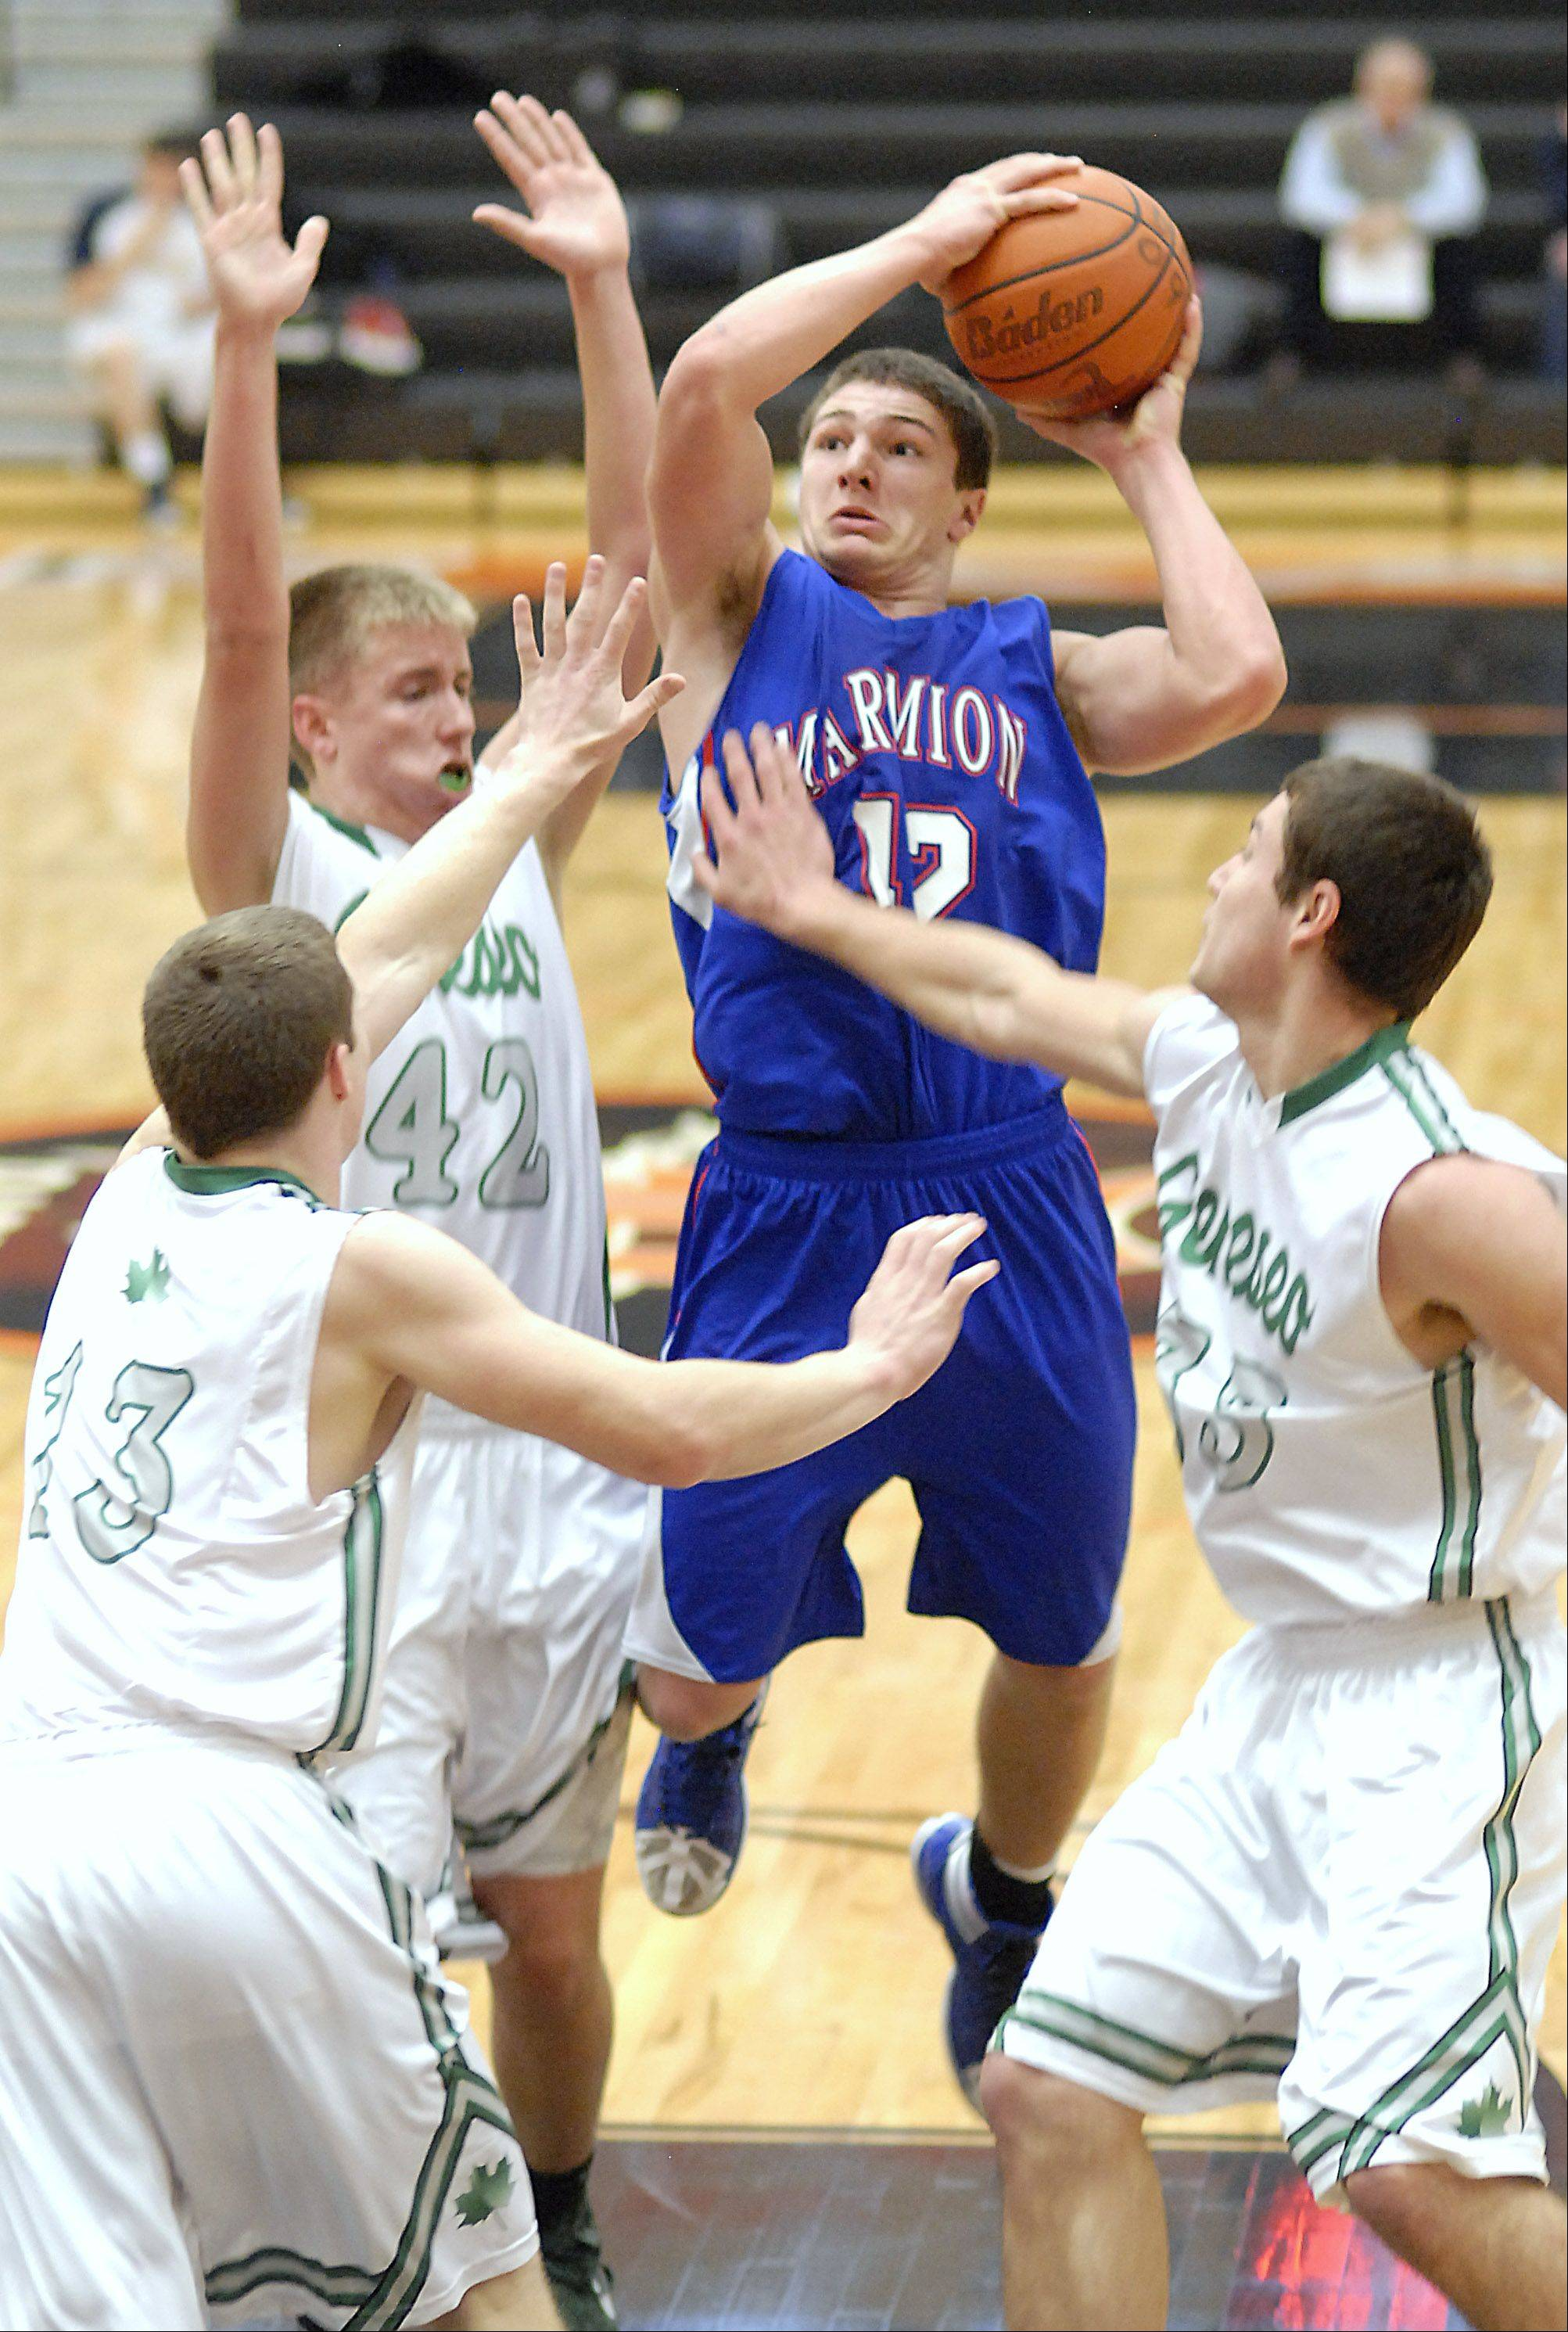 Marmion's Jordan Glasgow shoots over a team block by Geneseo's Luke Snyder, Jake Scott and Austin Lindstrom in the third quarter of the DeKalb tournament on Saturday, December 22.